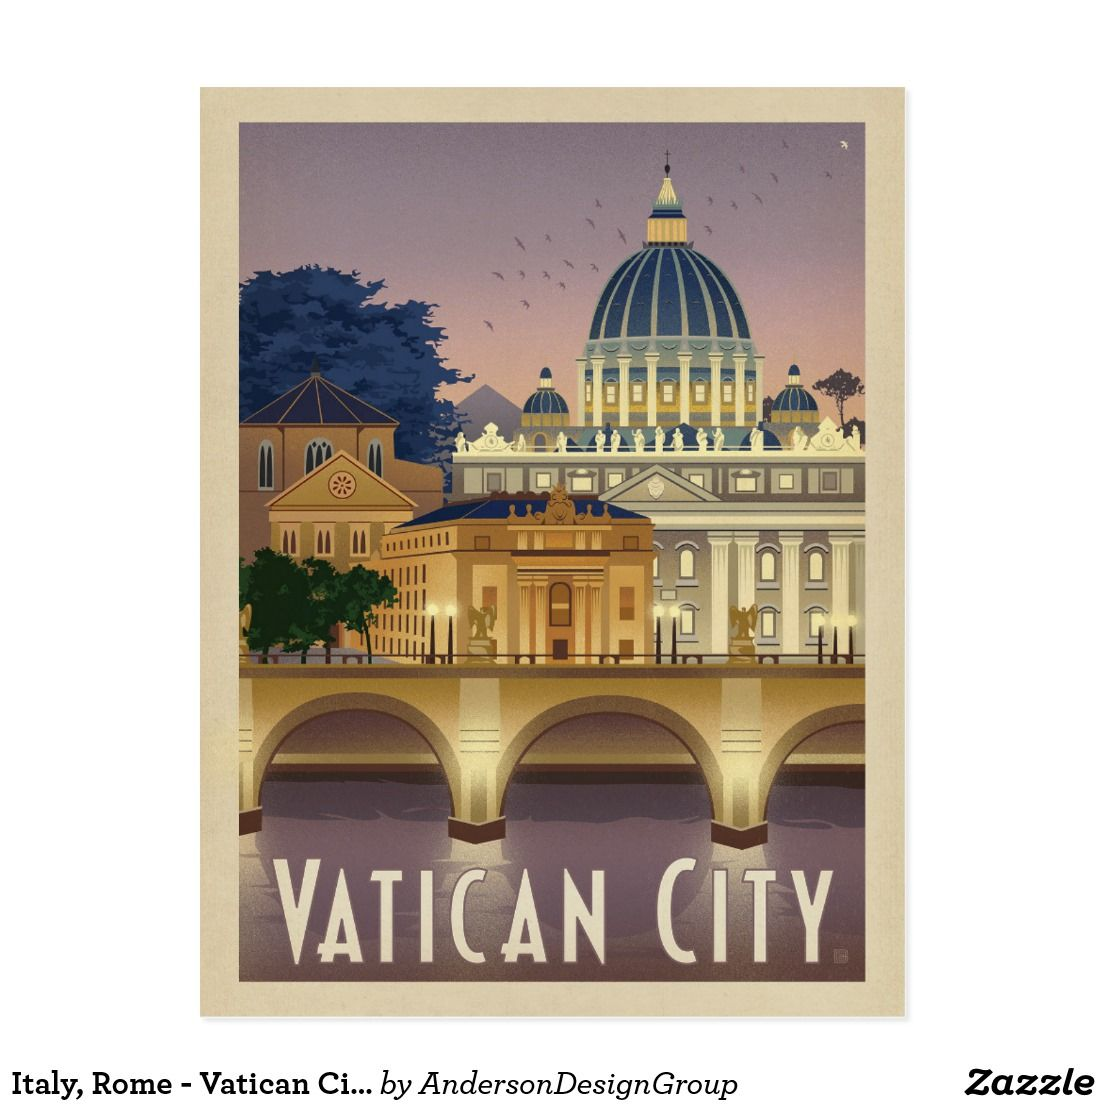 VINTAGE ROME ITALY ITALIAN TRAVEL A2 POSTER PRINT